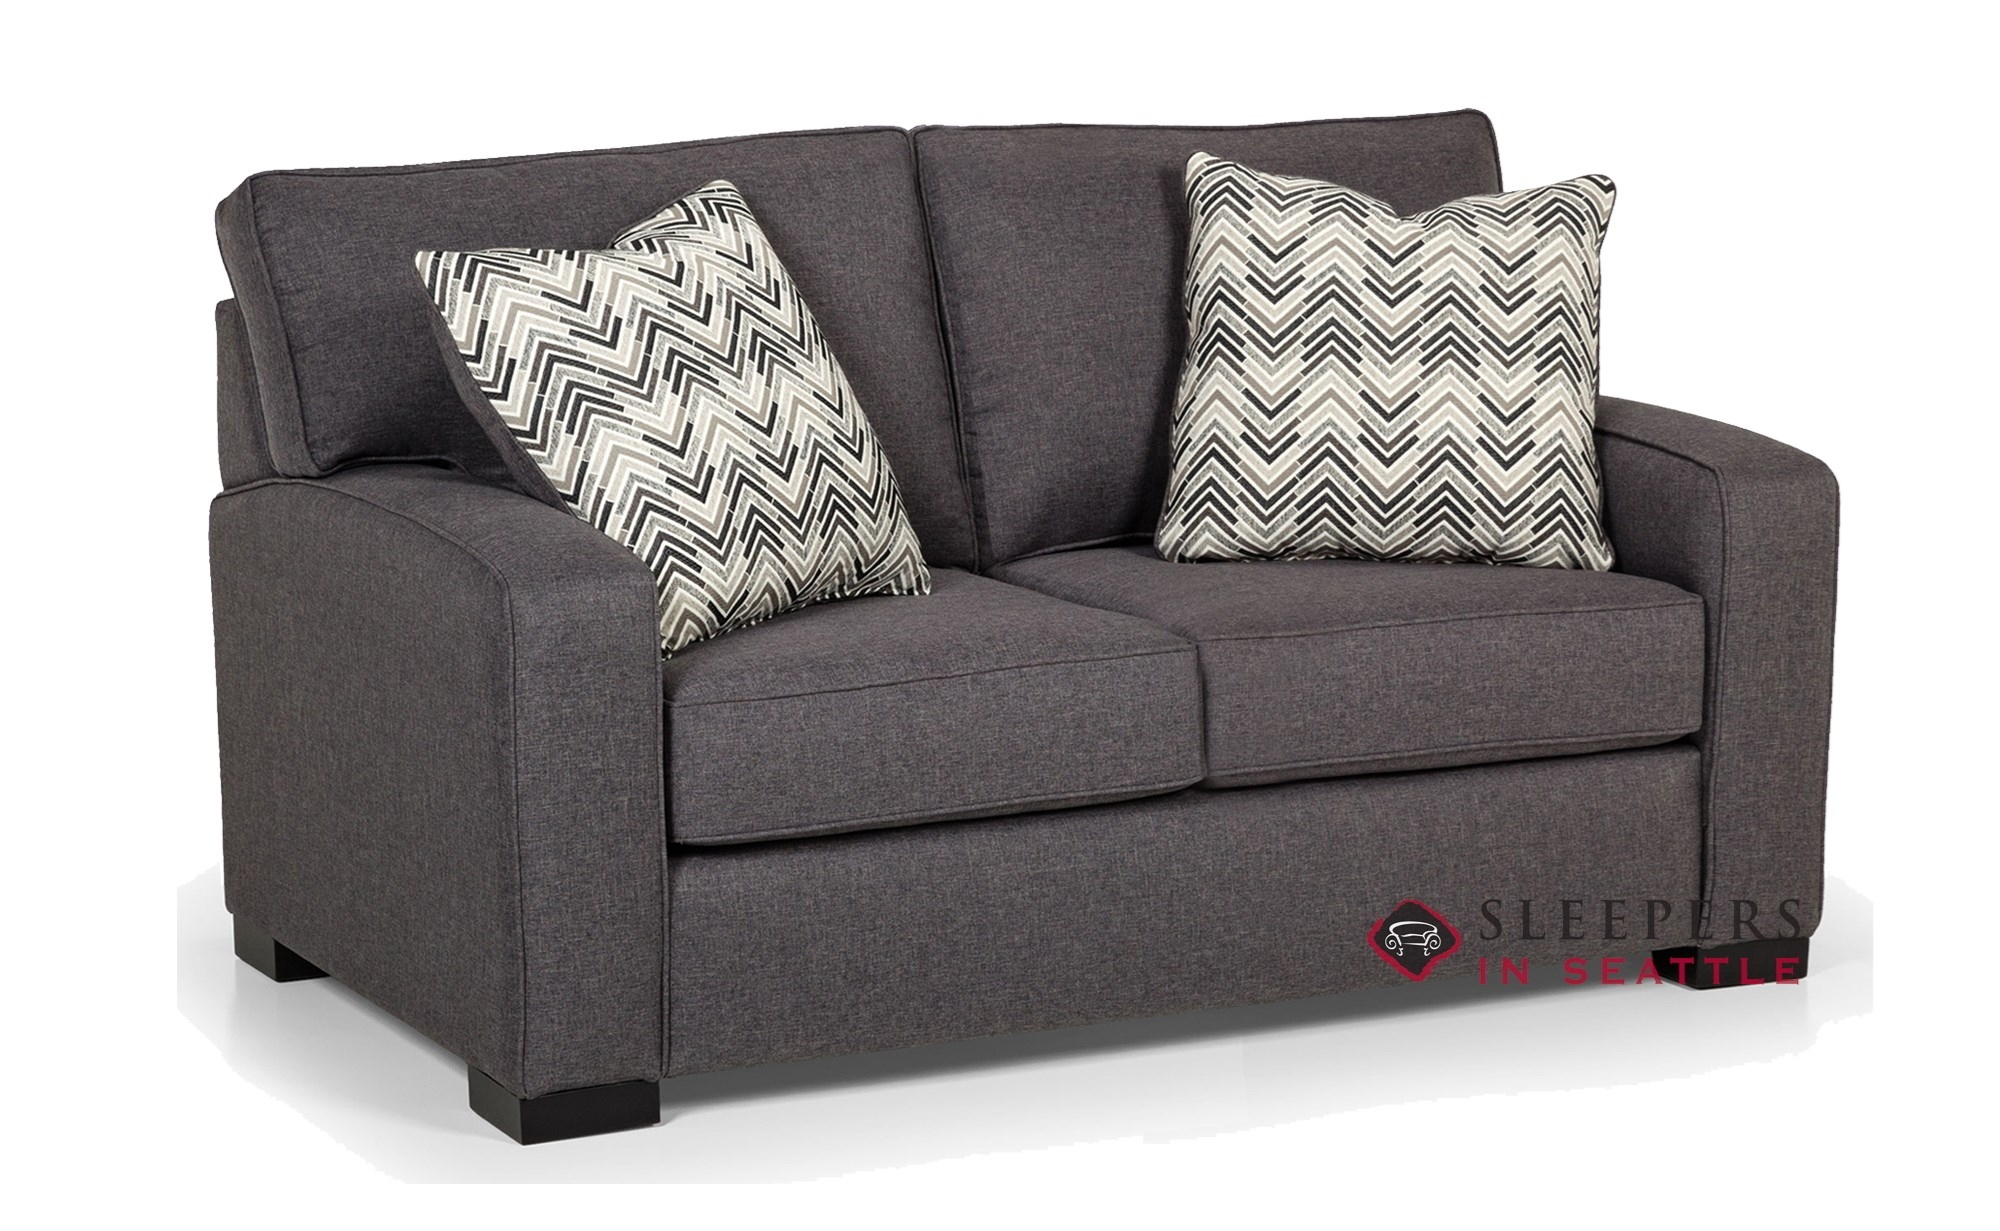 The Stanton 375 Twin Sleeper Sofa